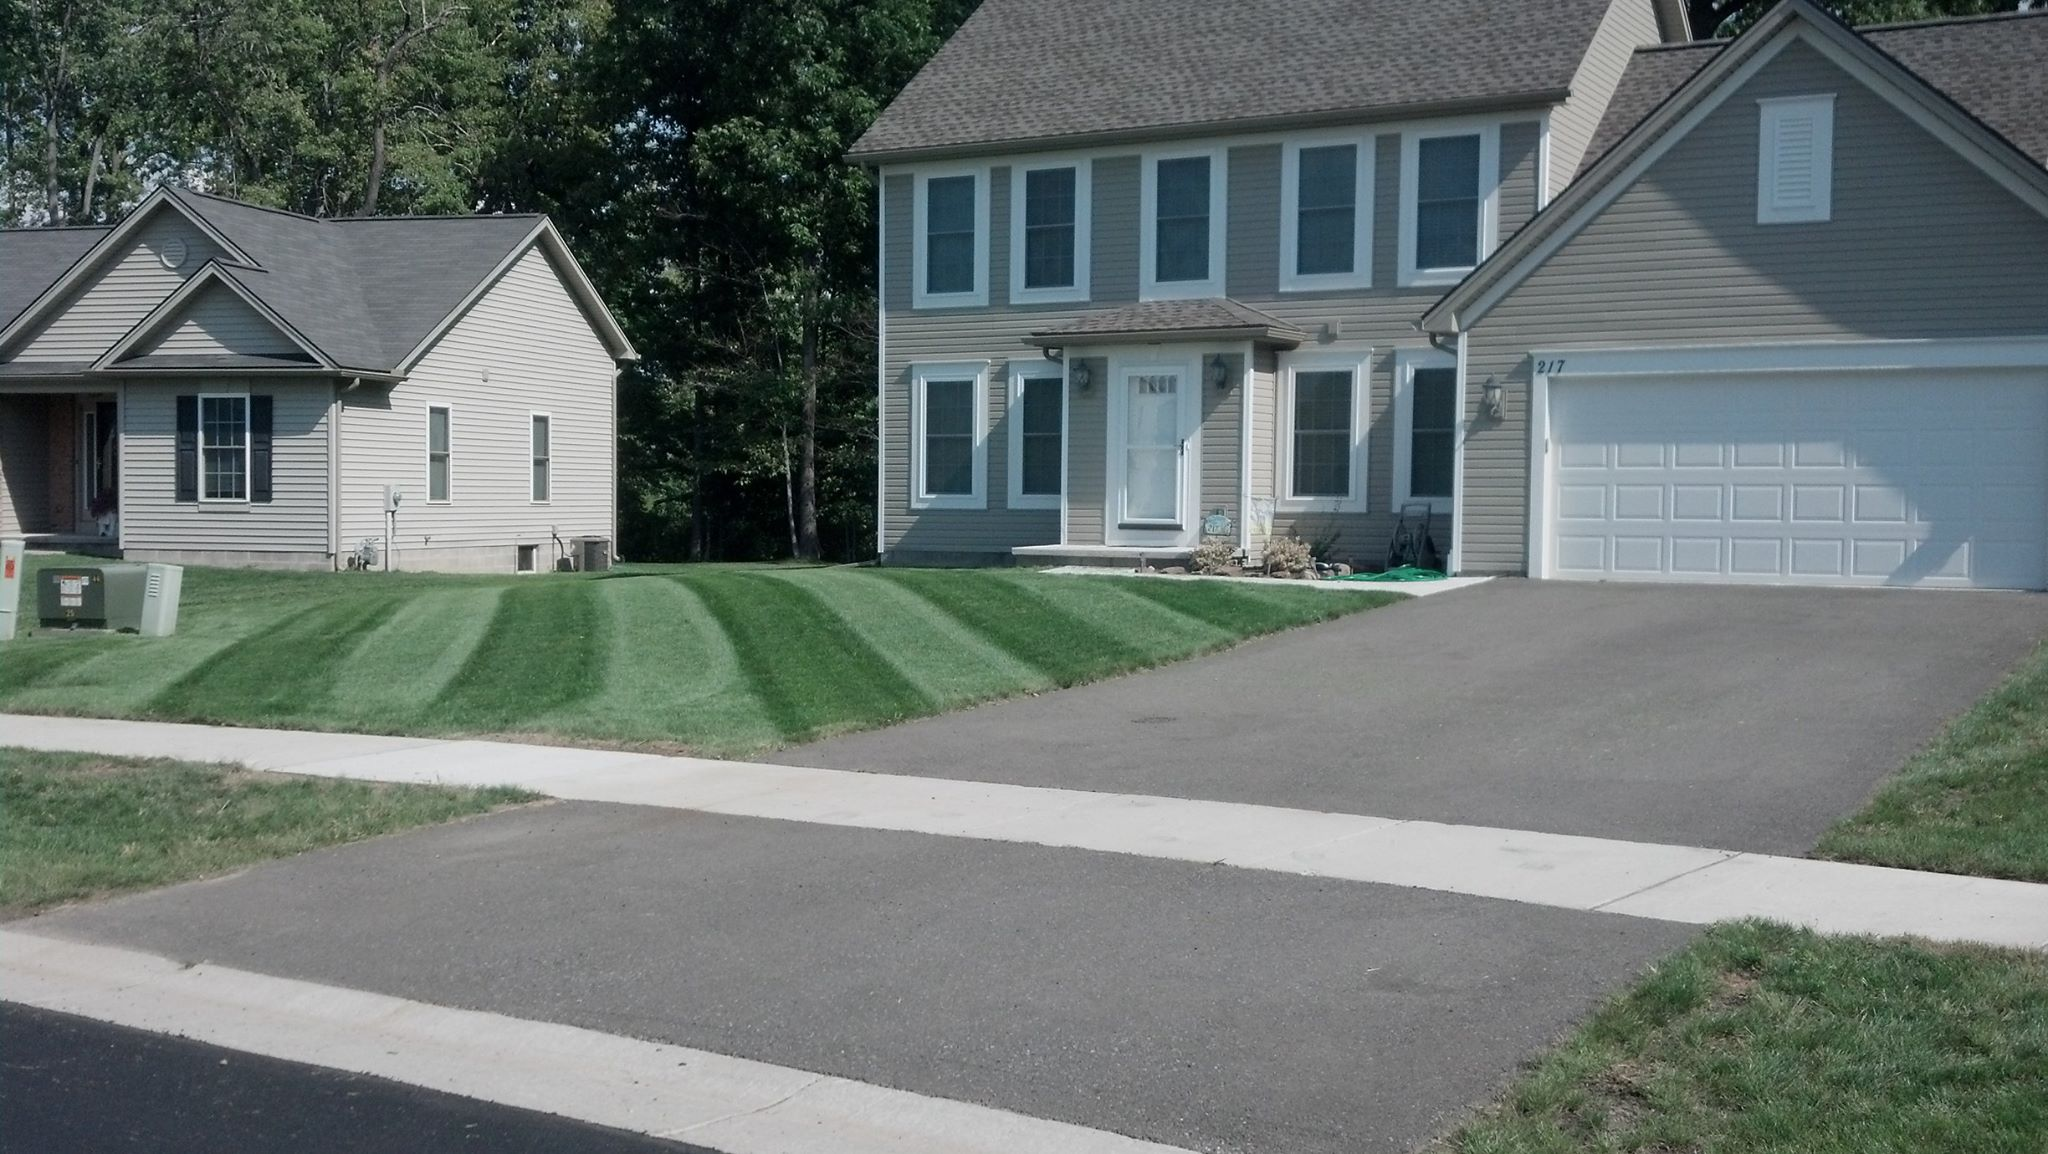 Lawn Mowing Greece Ny Twigs Lawn Care Greece Ny